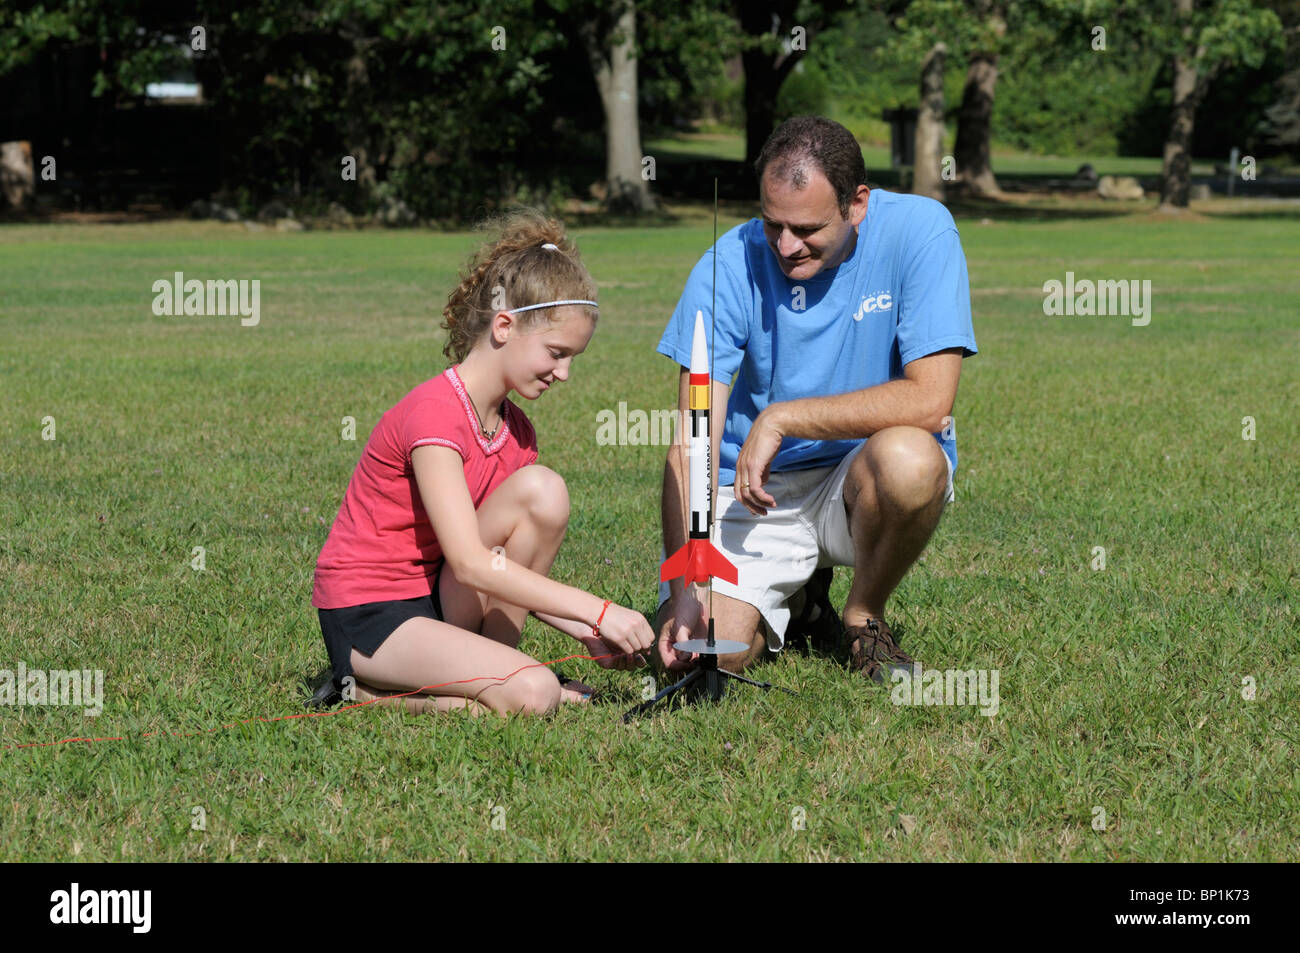 Girl, 11-12, and her father setting up a model rocket to launch. - Stock Image